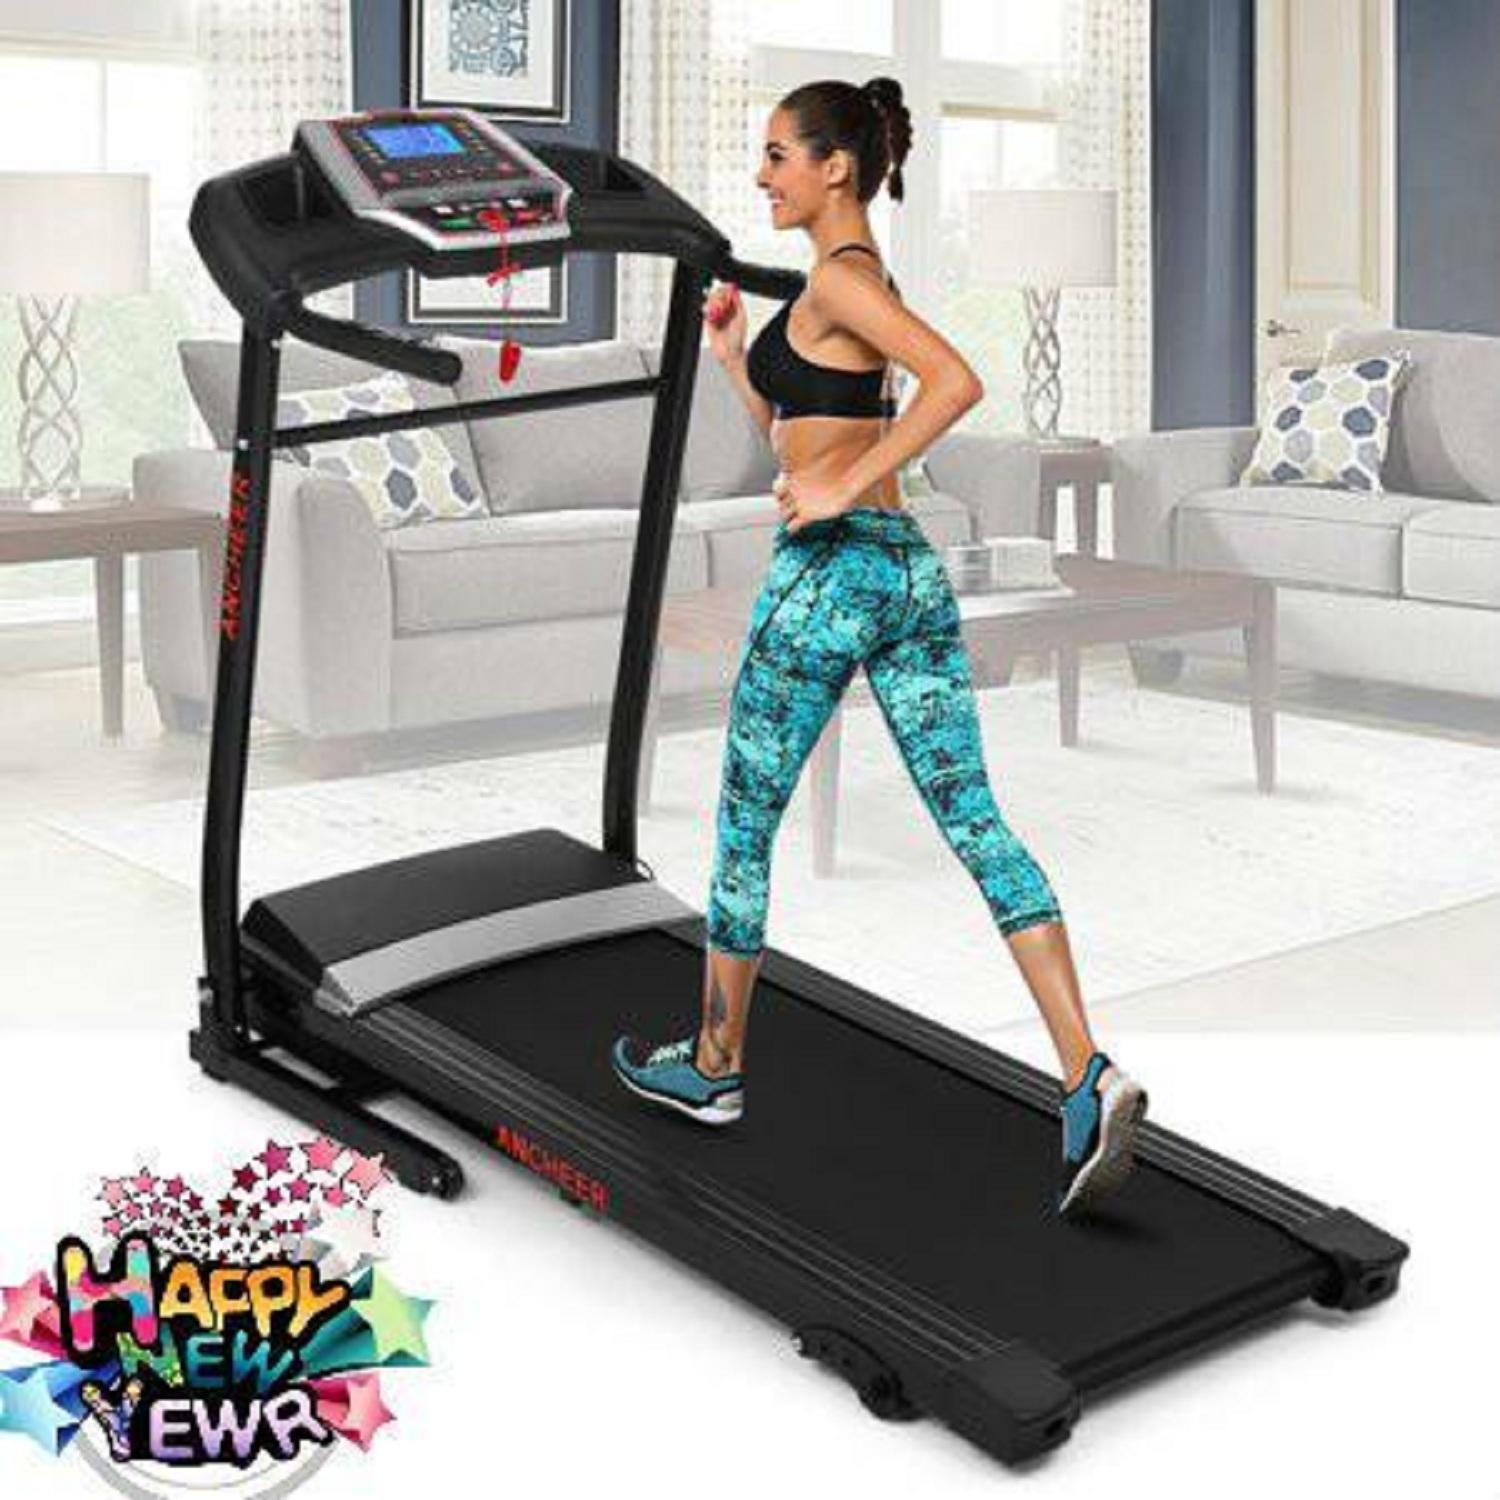 N ew 2.25 H P Folding Electric Treadmill Motorized Power Adjustable Incline Machine Running Machine With P01-P12 Programs And USB/MP3 HFON